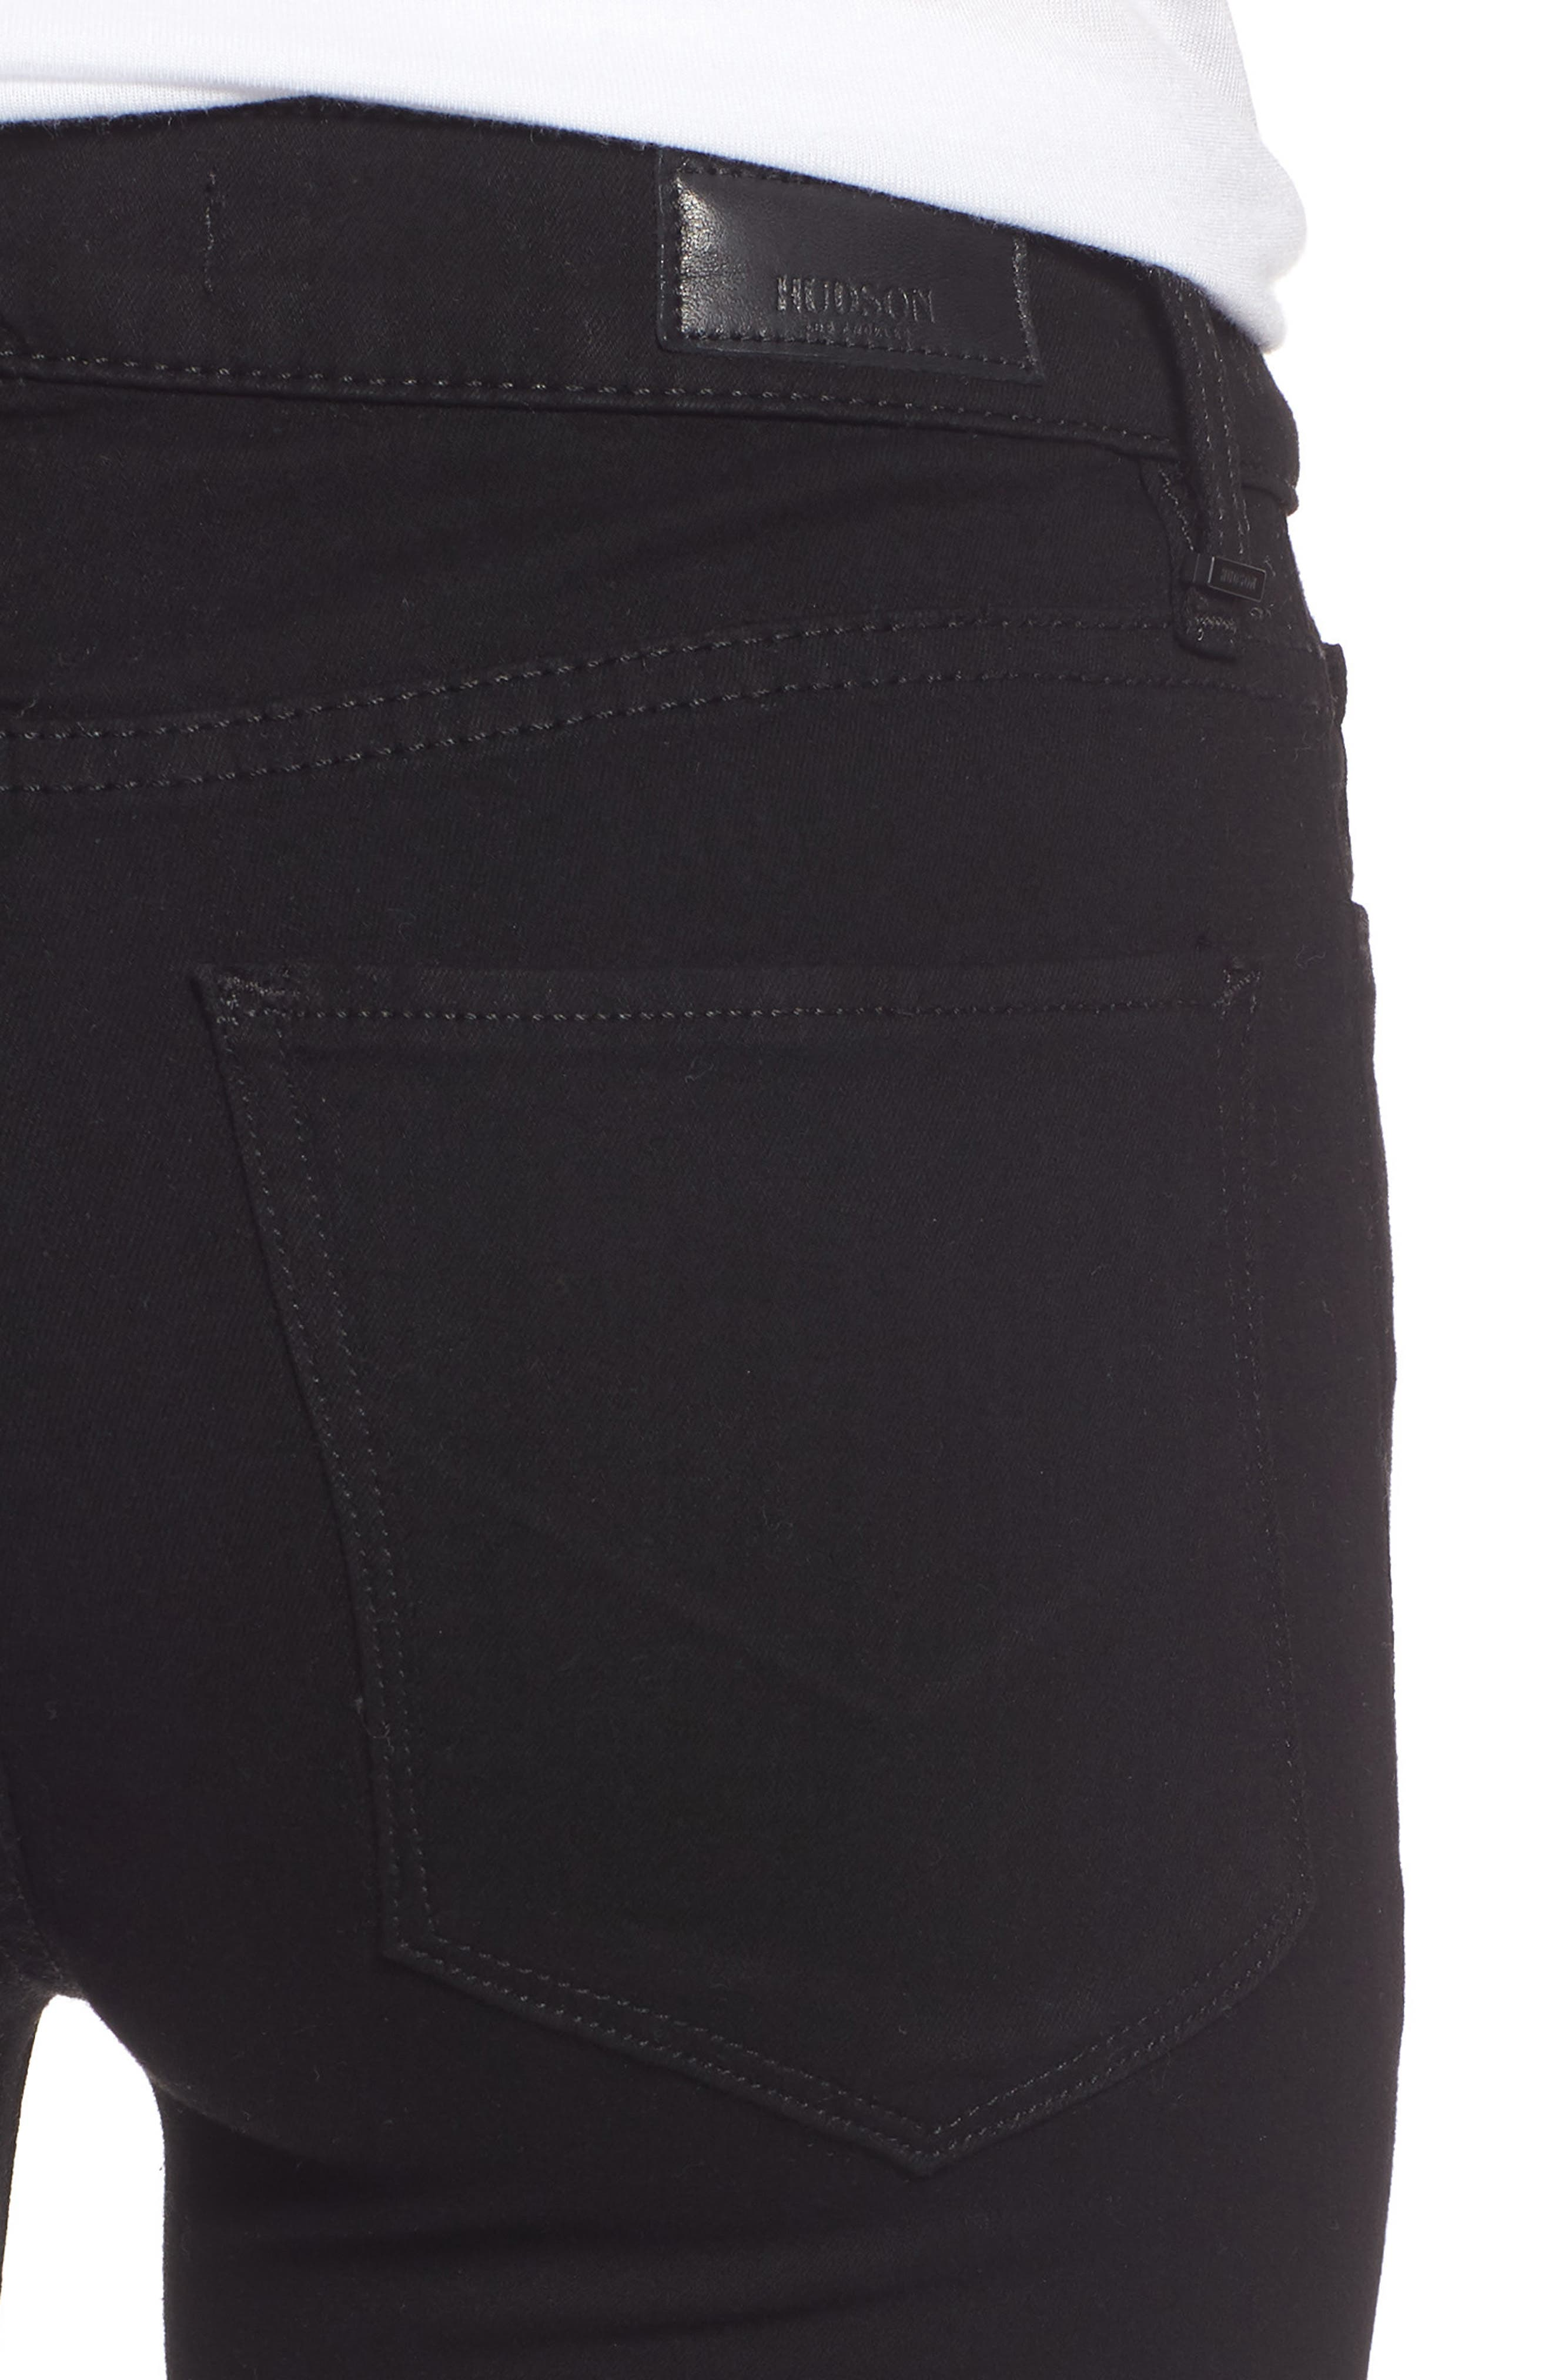 Drew Bootcut Jeans,                             Alternate thumbnail 4, color,                             BLACK